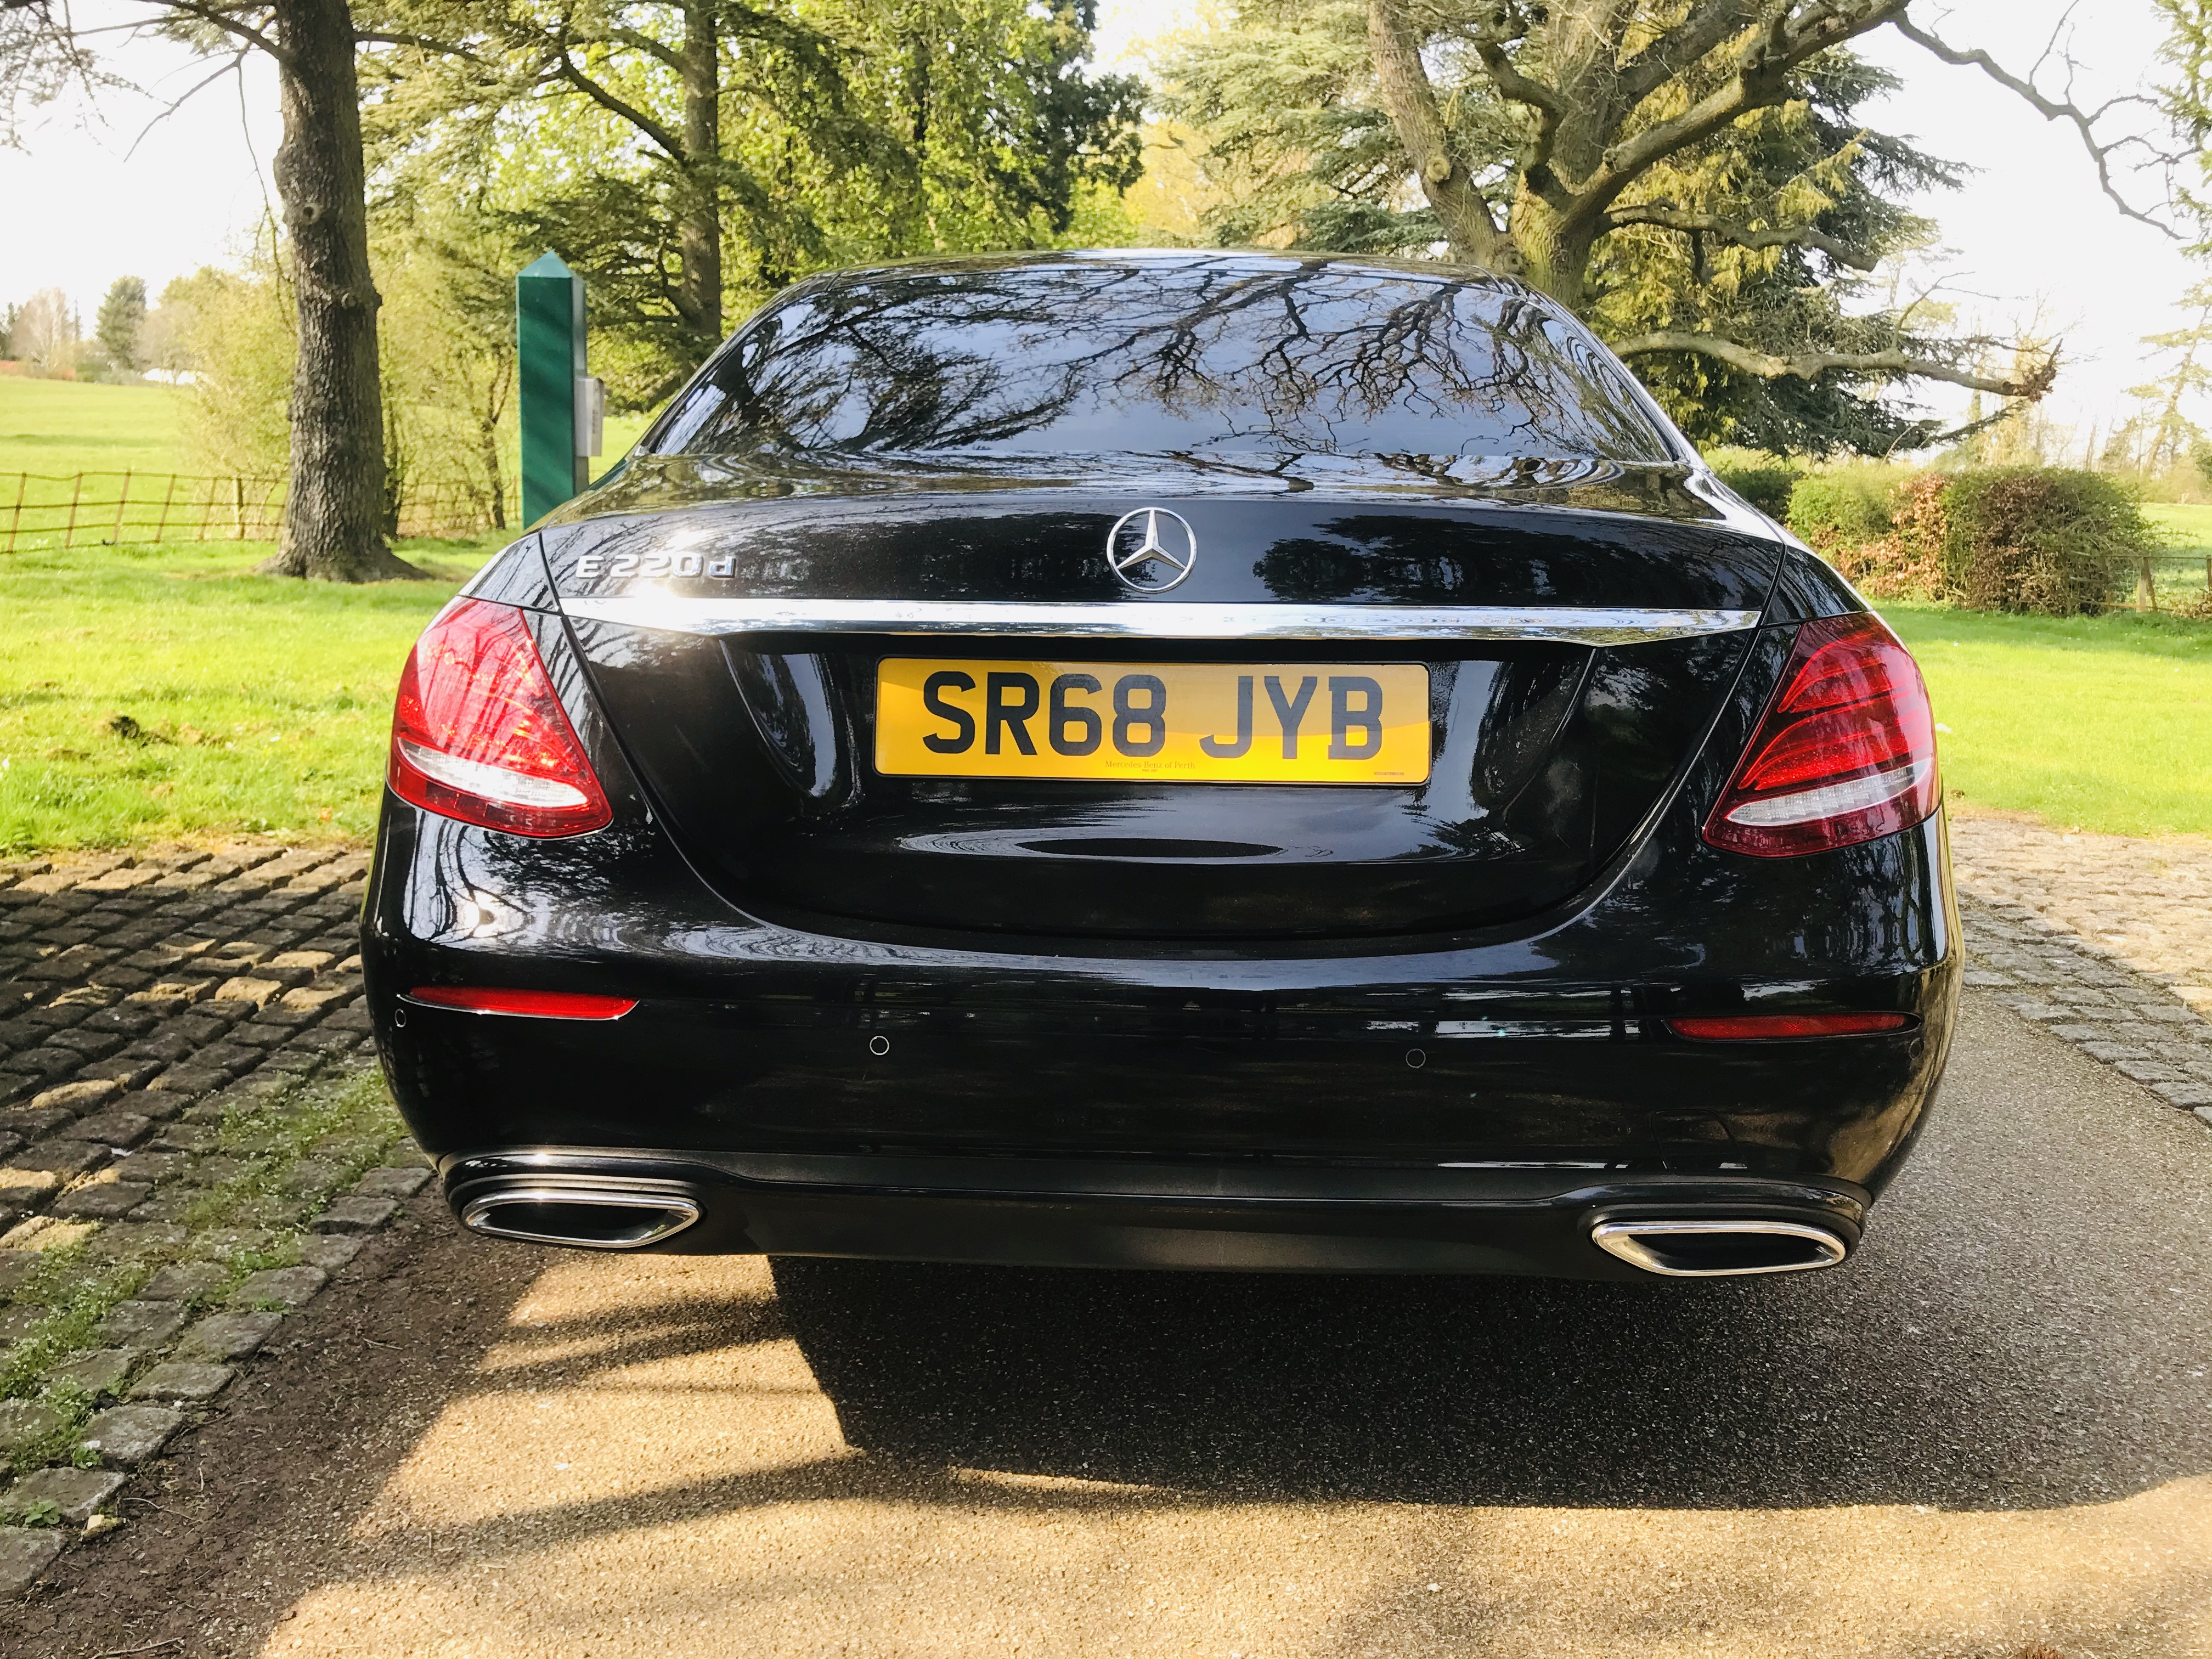 """On Sale MERCEDES E220d """"SPECIAL EQUIPMENT"""" 9G TRONIC (2019 MODEL) 1 OWNER - SAT NAV - LEATHER - WOW! - Image 7 of 26"""